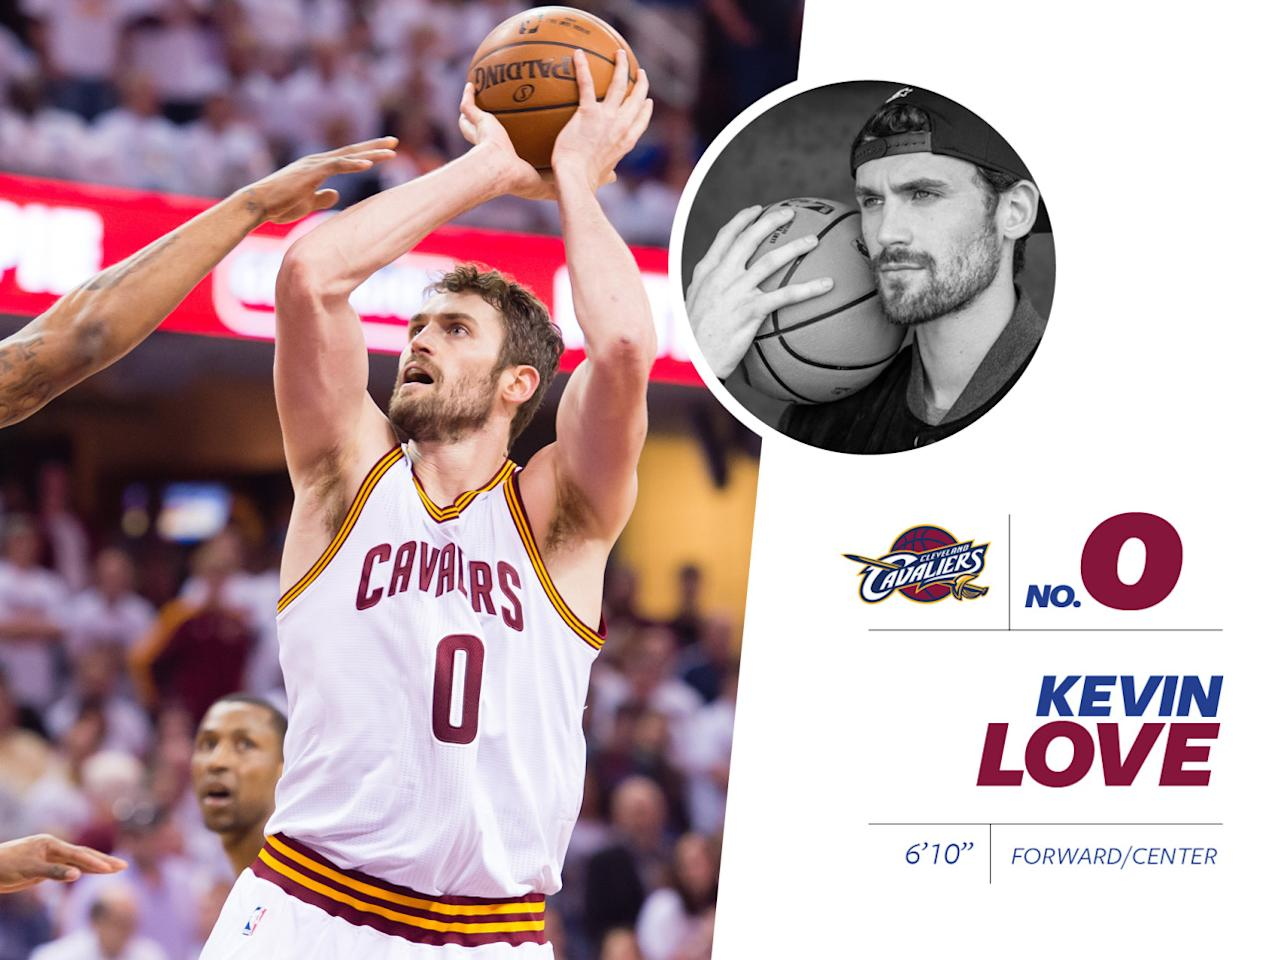 """<p>Cavaliers' No. 0 player, Kevin Love, is notably one of the sexiest men in the NBA, once posing <a href=""""http://espn.go.com/nba/story/_/page/bodykevinlove/cleveland-cavaliers-power-forward-kevin-love-strips-espn-magazine-body-issue"""">nude on the cover of ESPN's Body Issue in 2015</a>. He looked good. Love comes from a family of athletes — his father is<a href=""""https://en.wikipedia.org/wiki/Stan_Love_(basketball)"""">a former L.A. Laker</a> — and has an all-American look. Check out his <a href=""""https://www.instagram.com/p/5lbUO3M90b/?taken-by=kevinlove&hl=en"""">patriotic off-court style</a> and enviable<a href=""""https://www.instagram.com/p/9m_Pb9M93G/?taken-by=kevinlove&hl=en"""">mustache</a>.<i>Photo: Getty Images / Instagram.com</i></p>"""